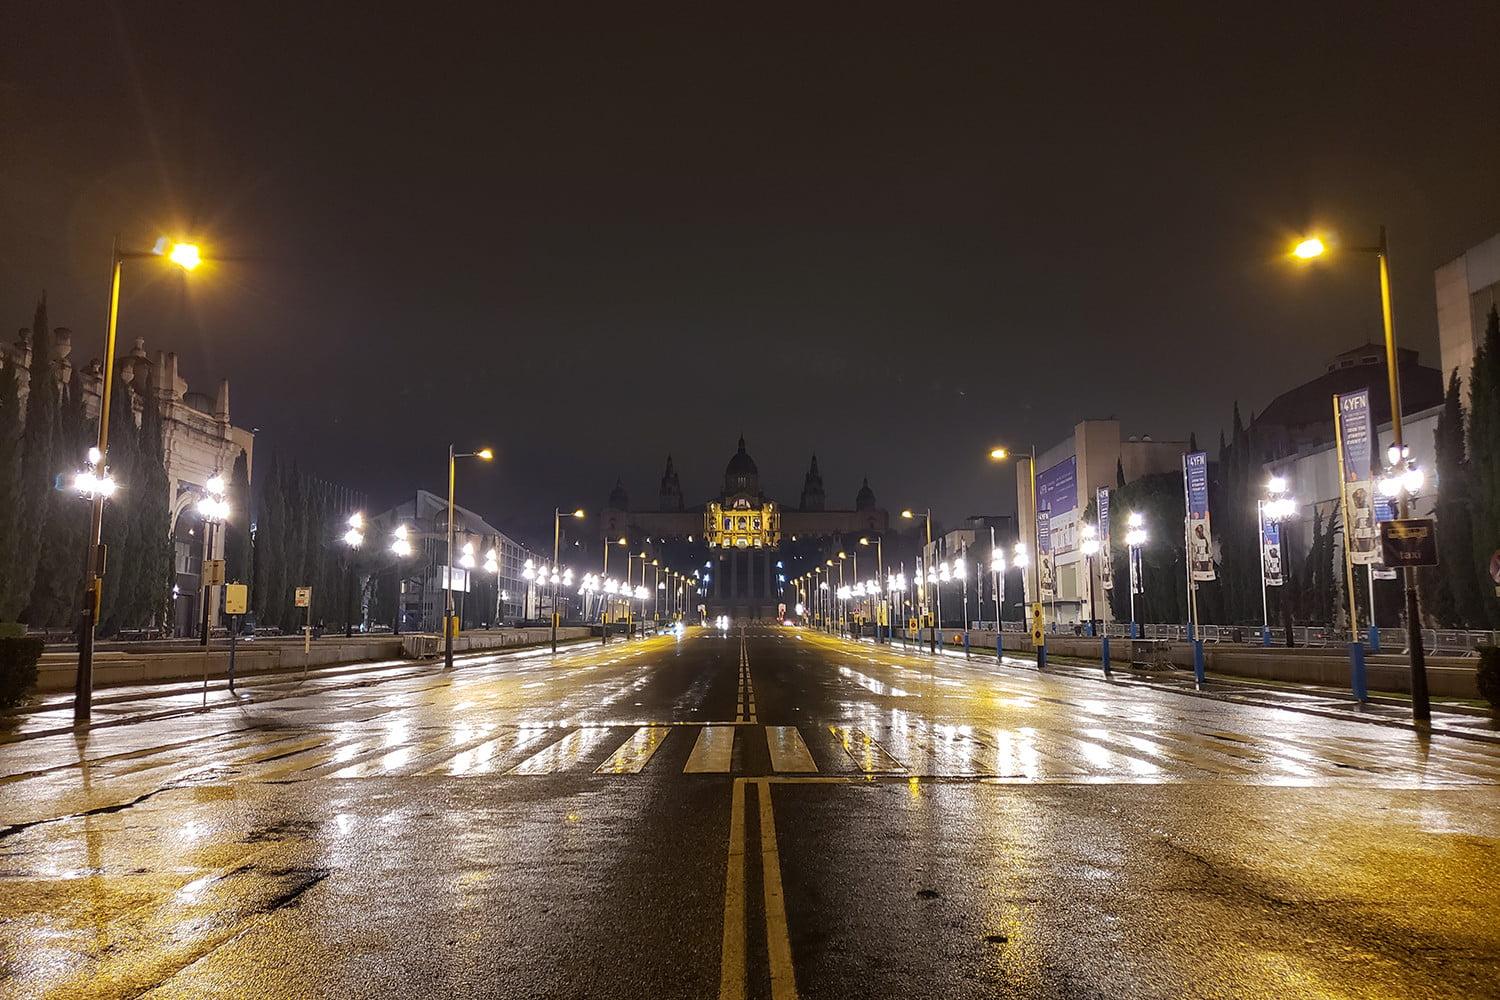 samsung galaxy s9 plus review camera samples wet road